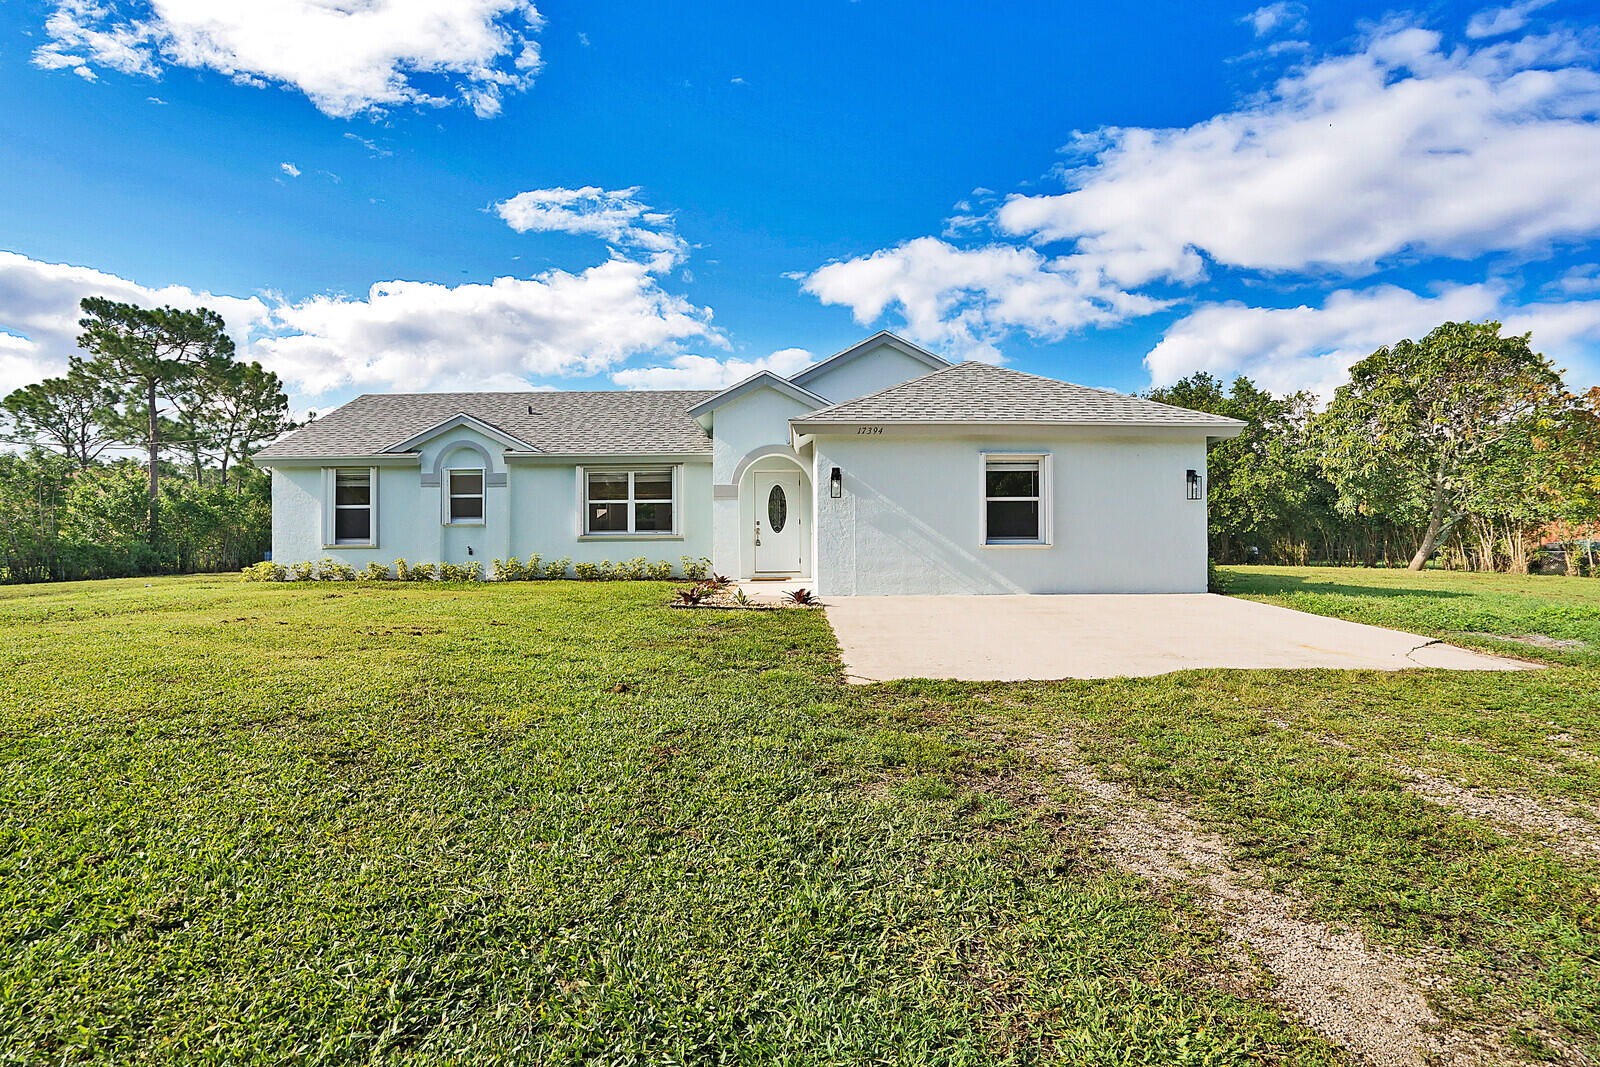 Home for sale in Loxahatchee The Acreage Florida